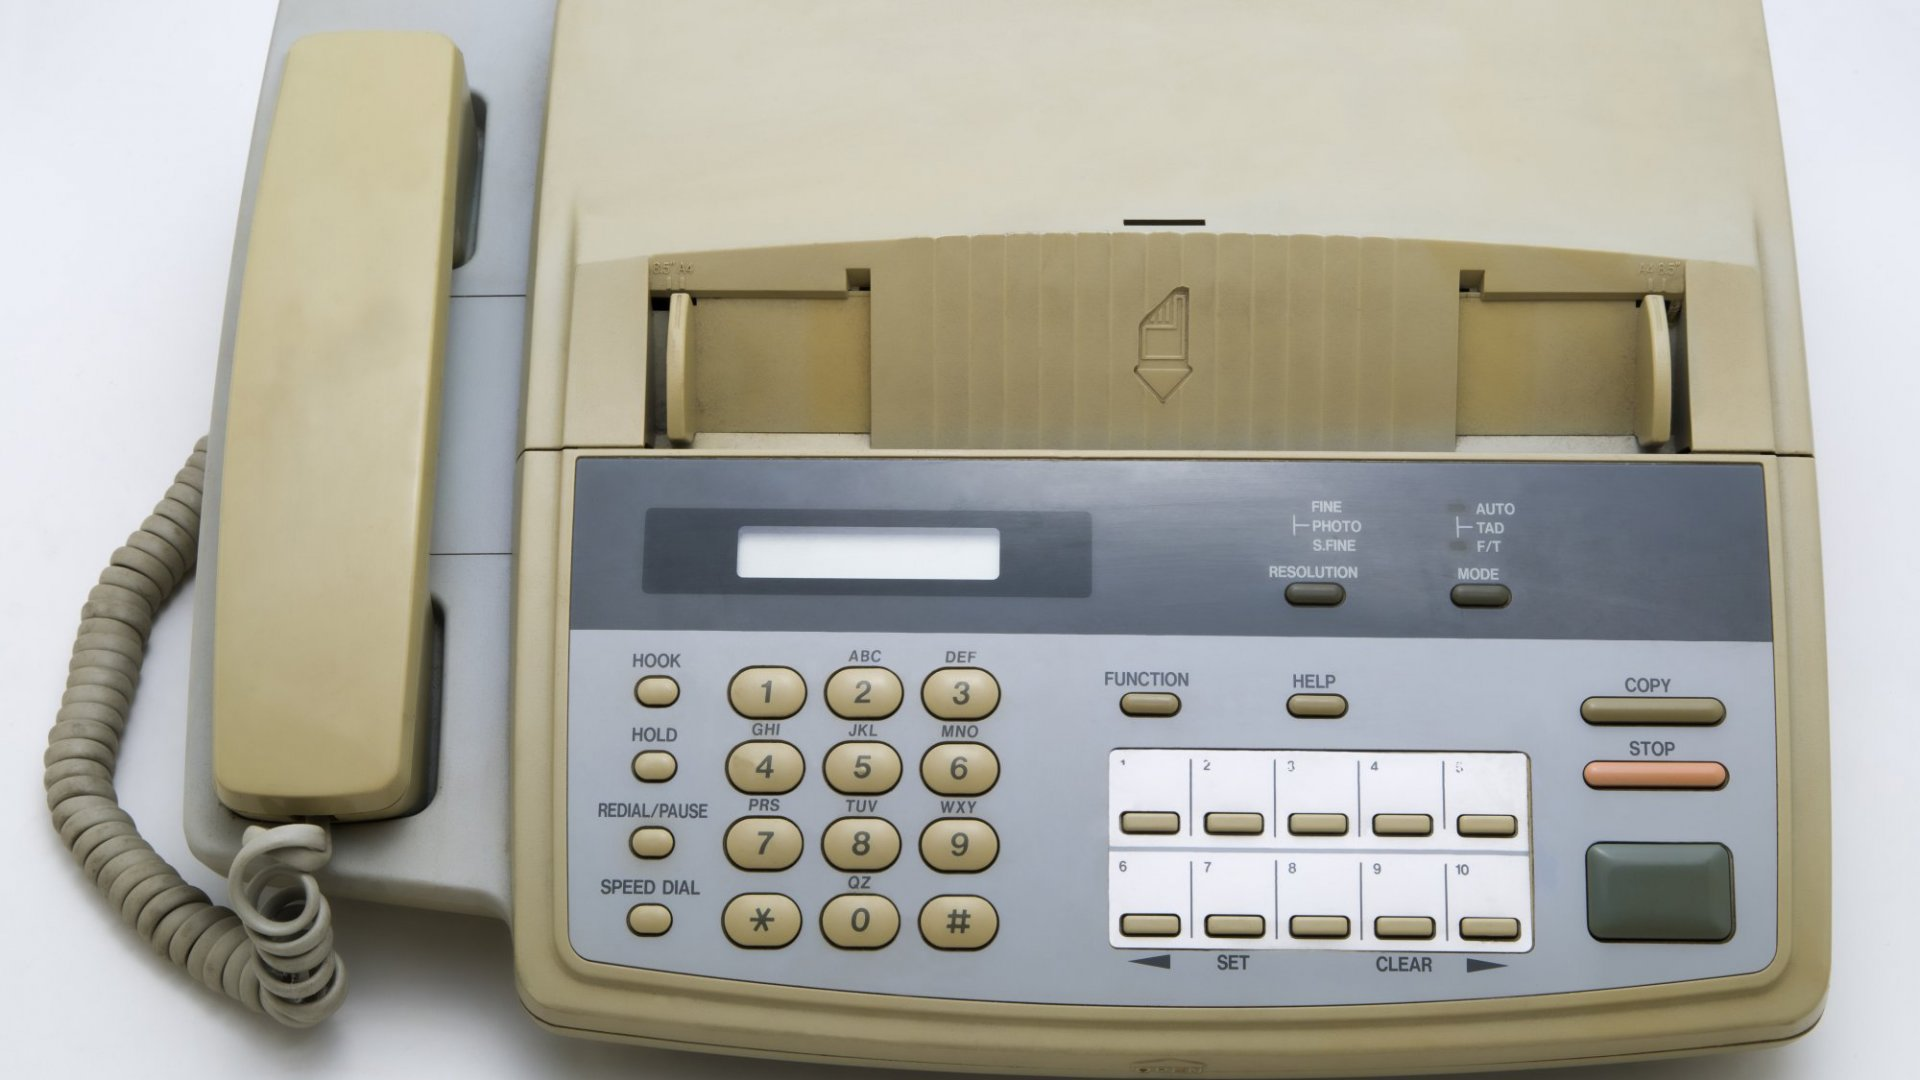 If you still use a fax think what that says about your business?